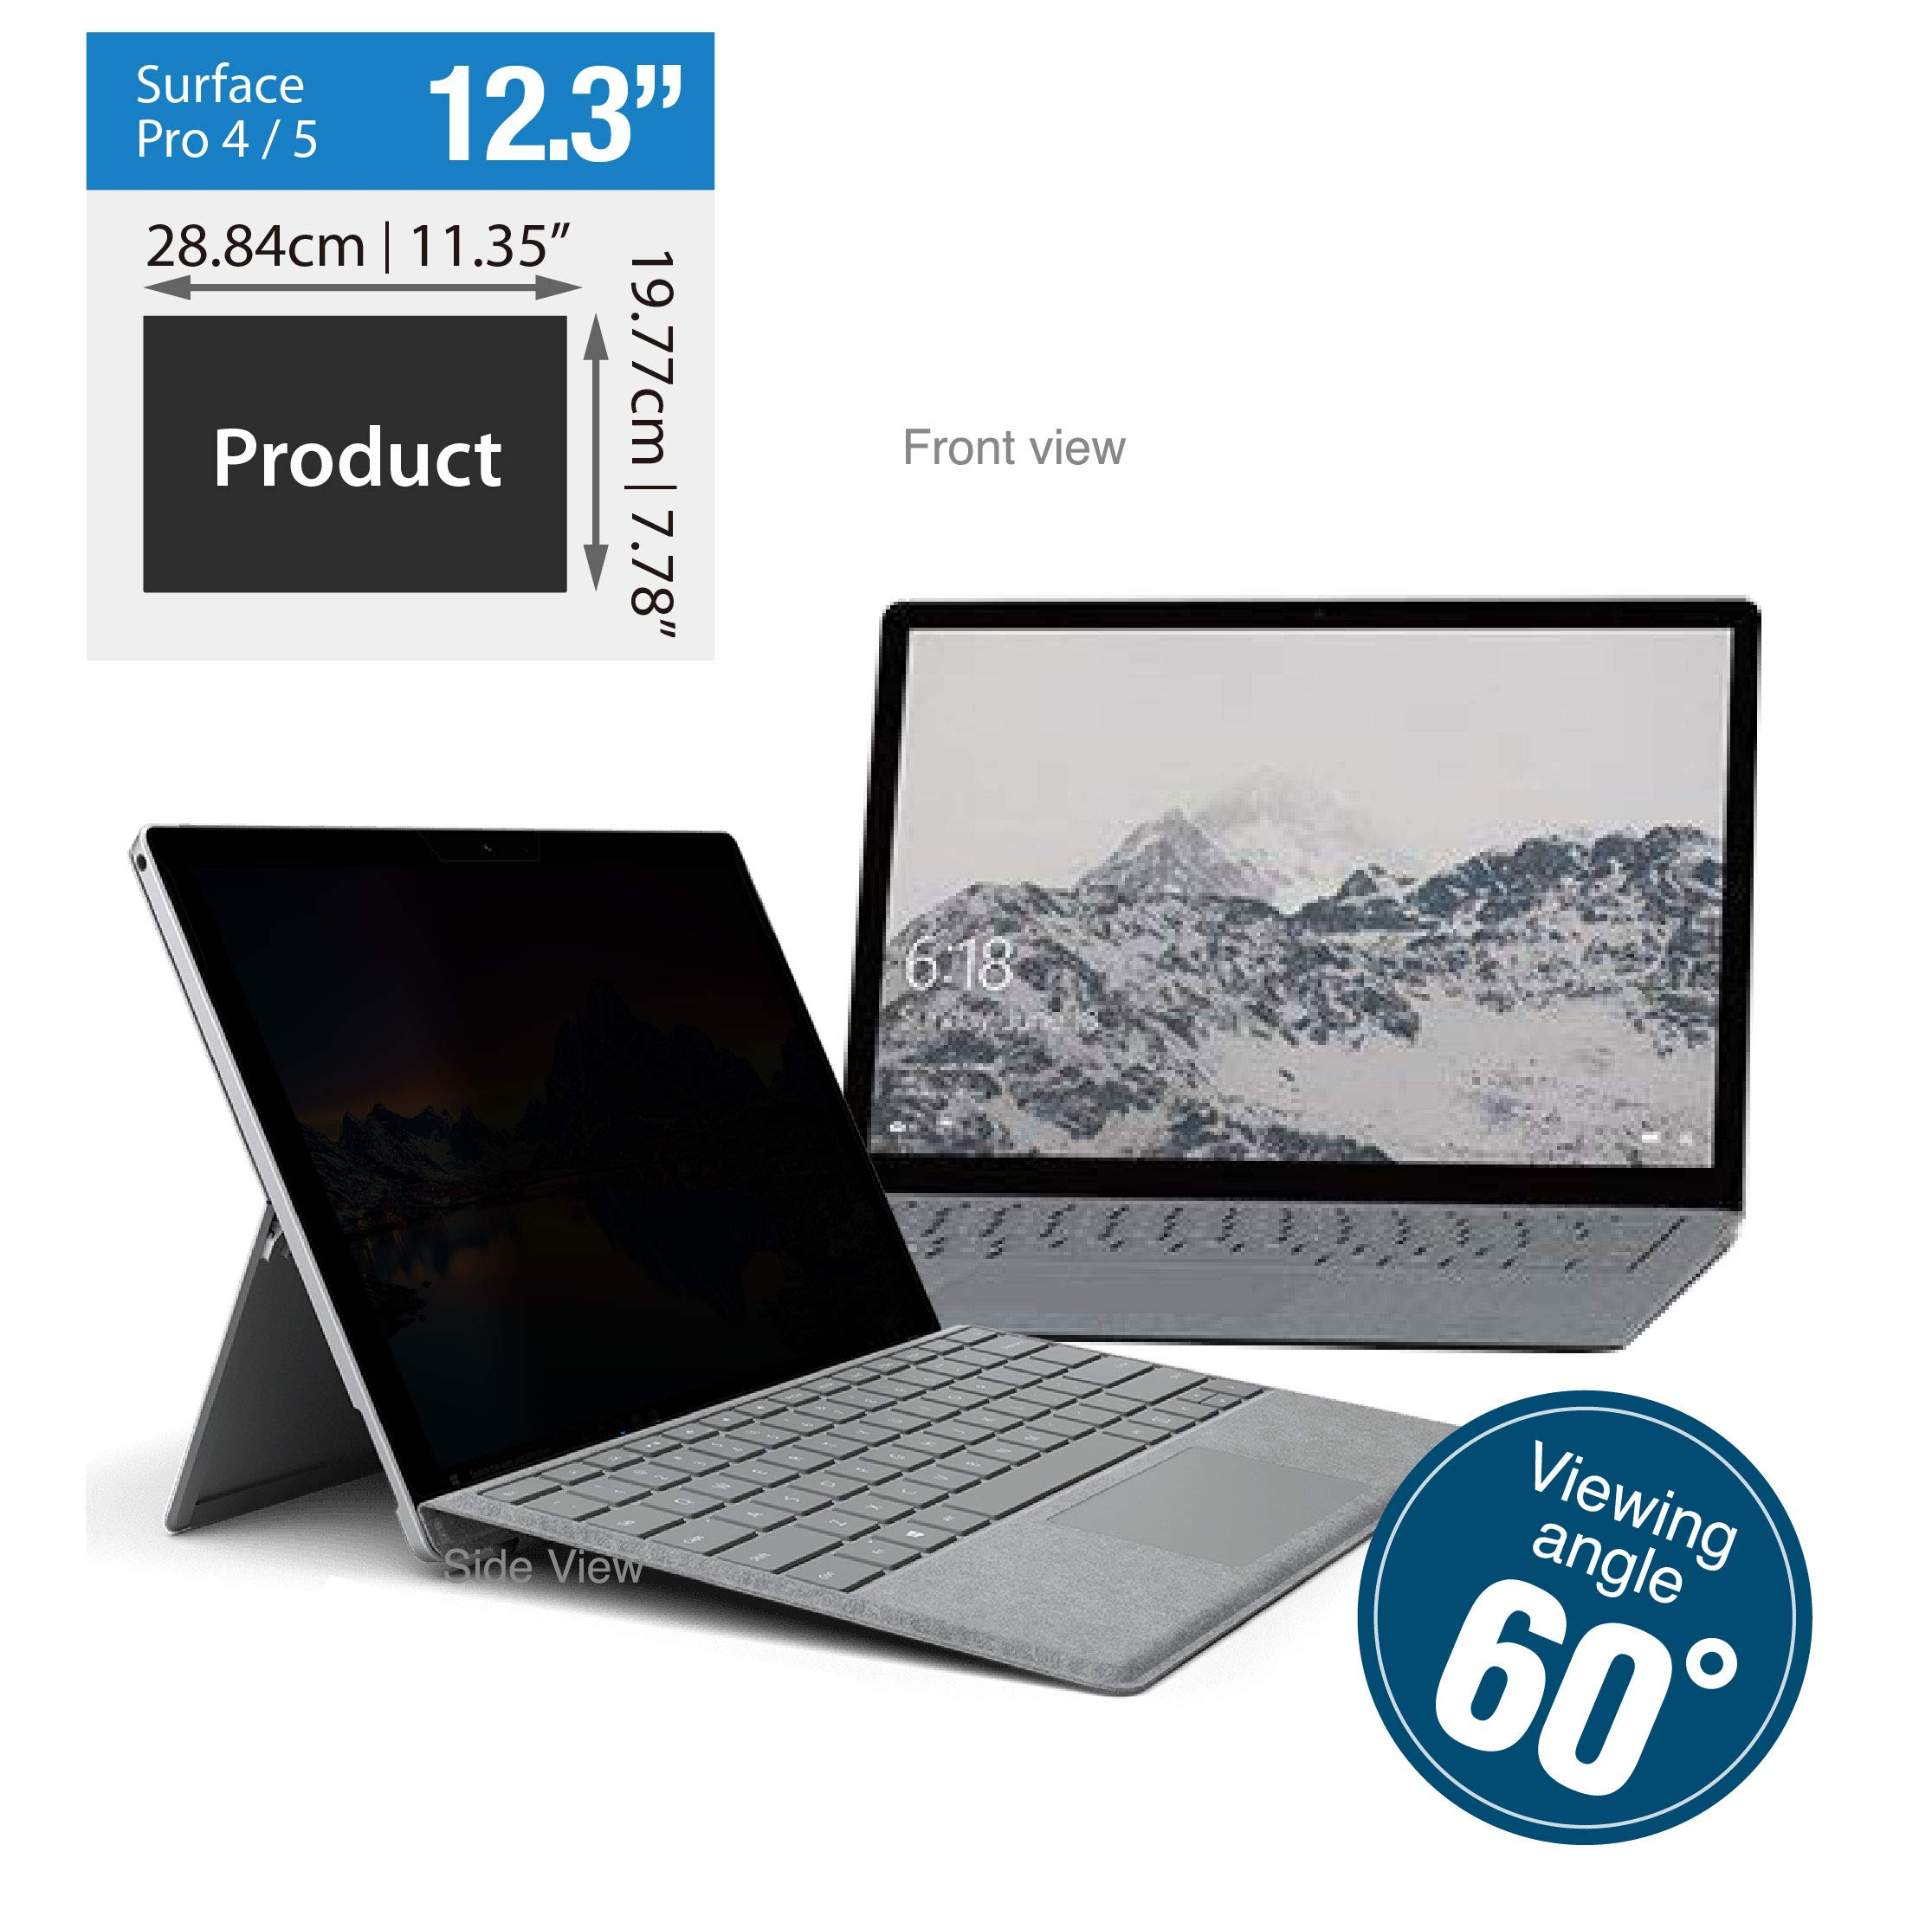 KAEMPFER Anti-Blue Light Privacy Screen Protectors Filter for Microsoft Surface Pro 4/5 (11.35''x7.78''/288.4x197.7mm) by KAEMPFER (Image #2)